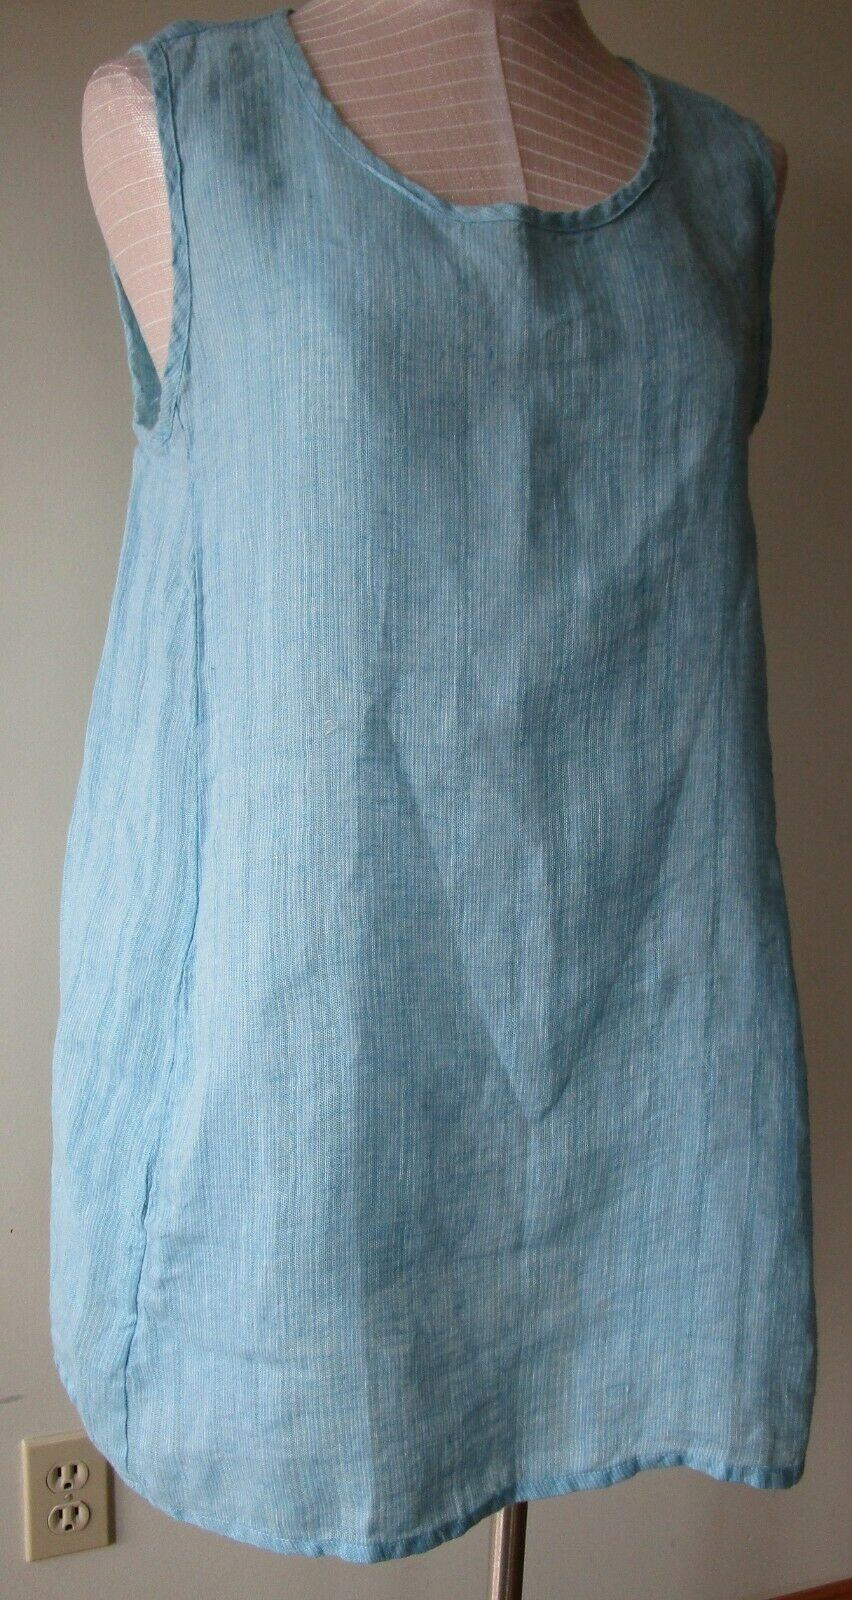 FLAX  Designs  Linen Side Pocket  Tunic   2G  &  3G   NWOT   AQUA  WAVE